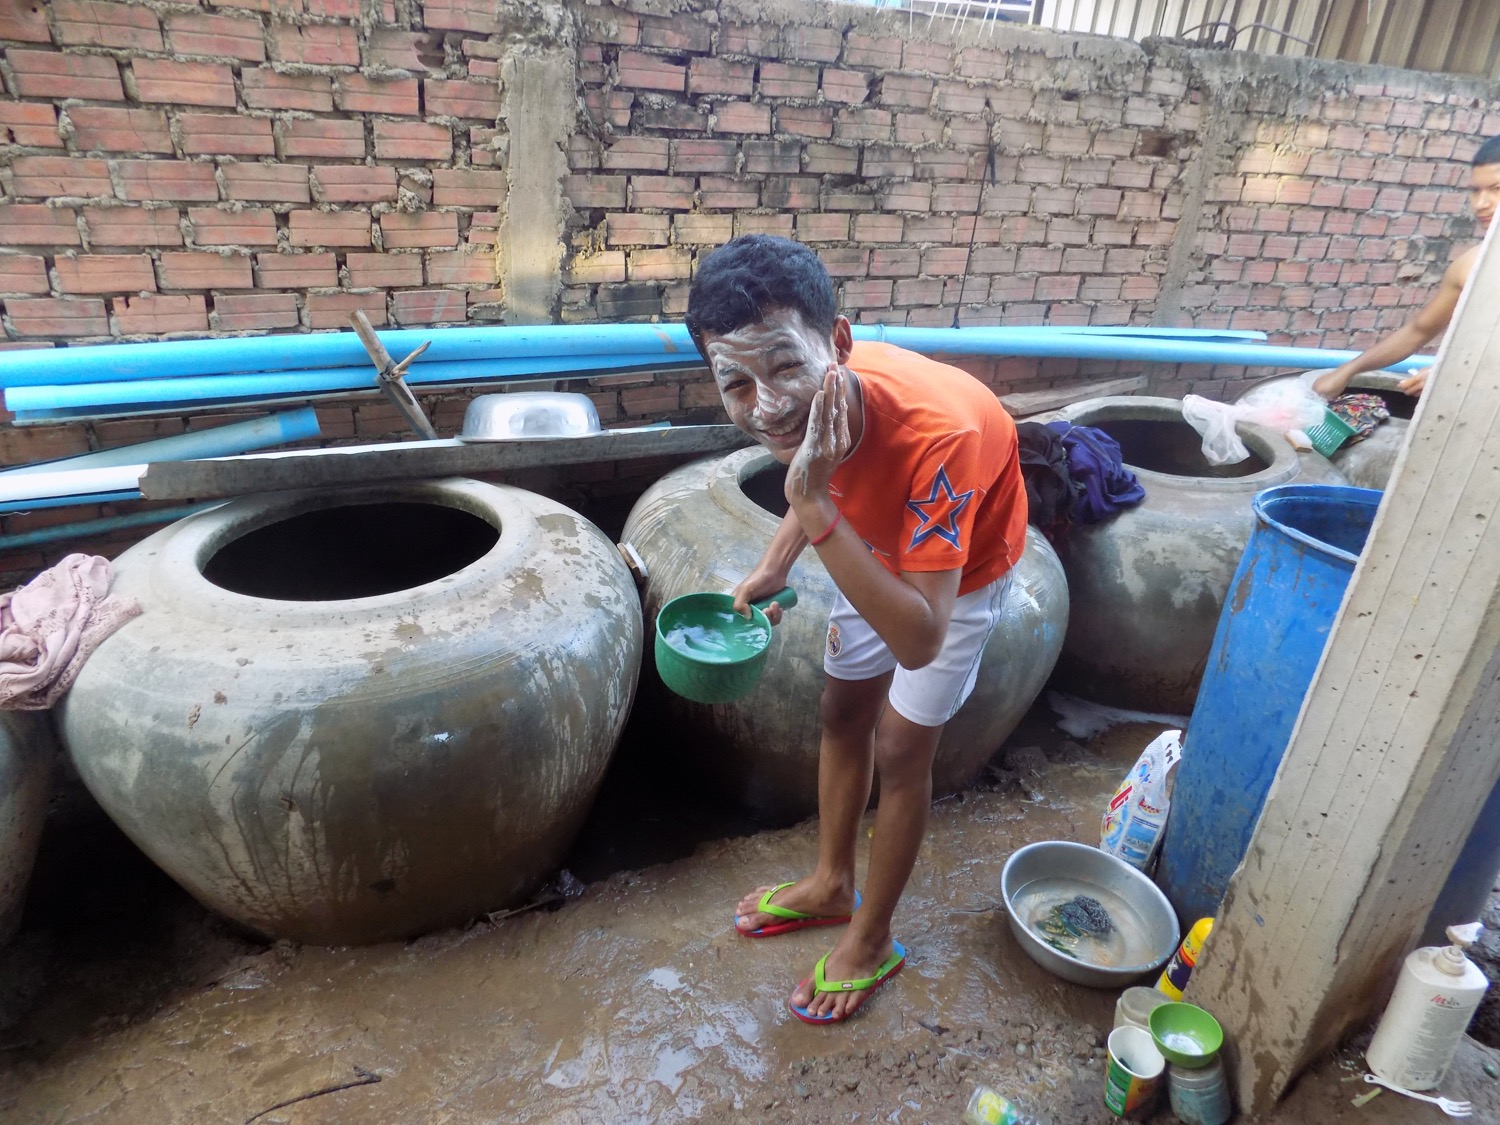 Narak gets ready in the morning by taking a shower and washing his face.